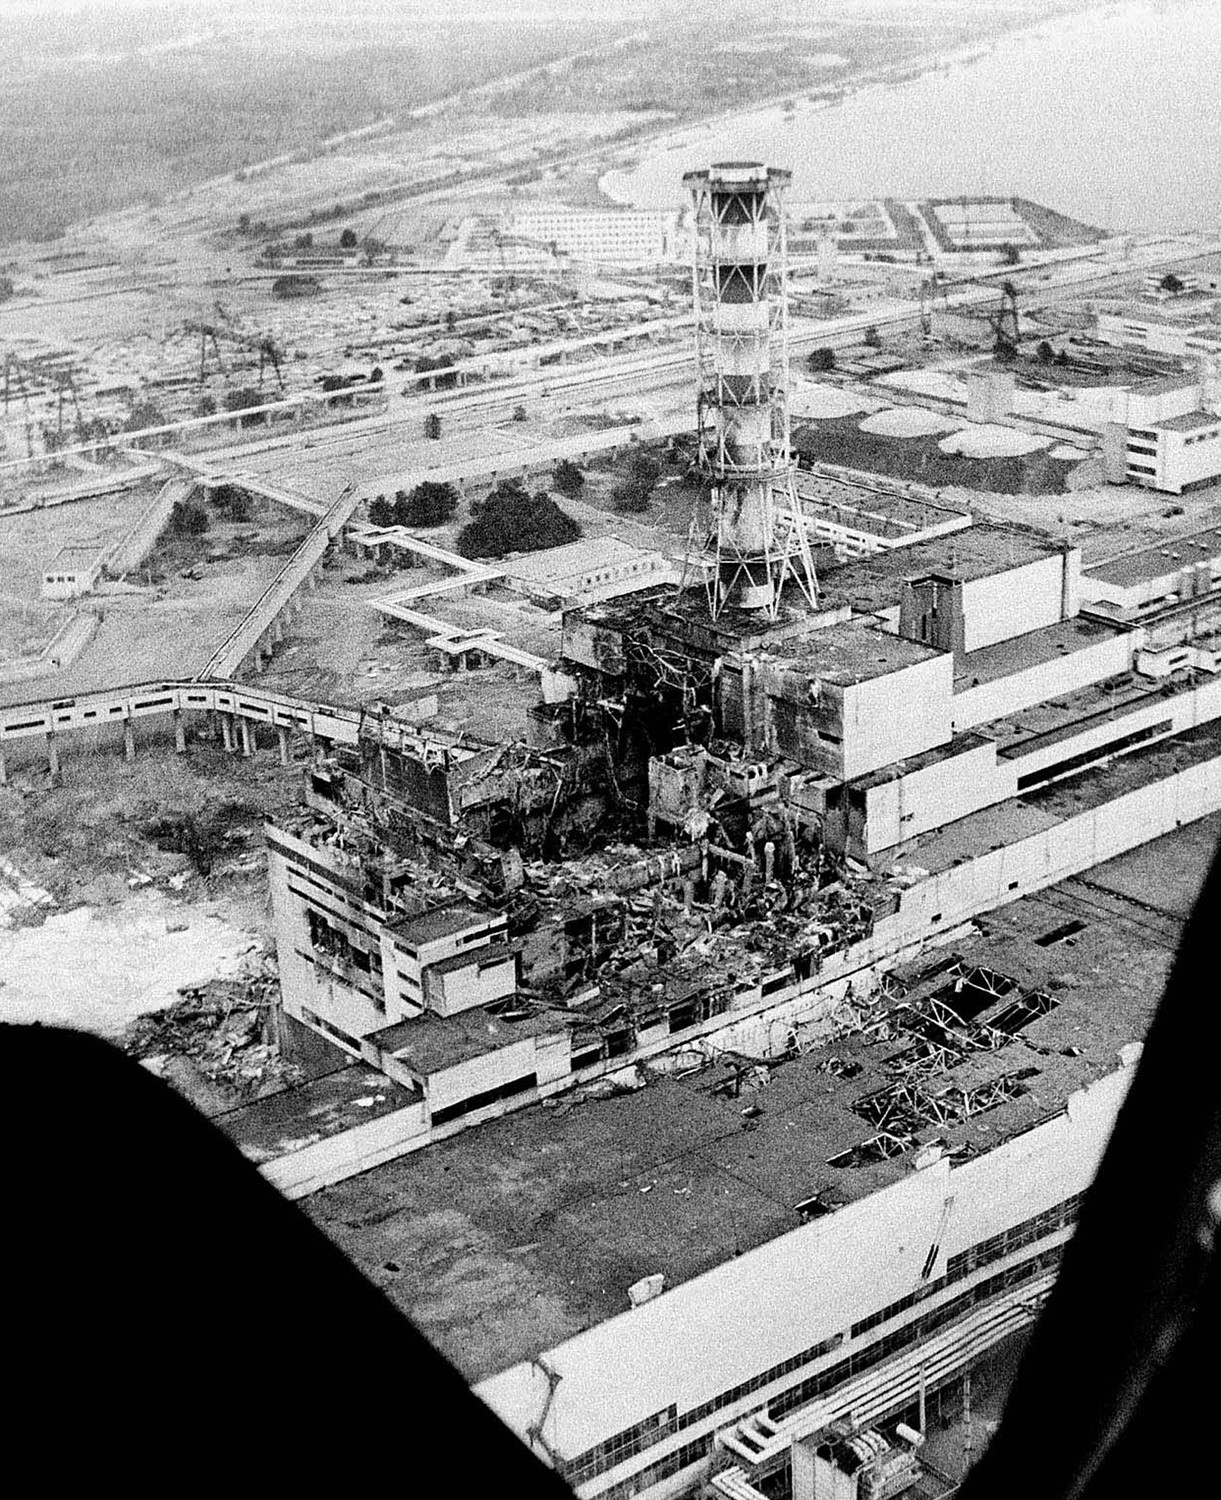 The damaged Unit 4 reactor building at Chernobyl